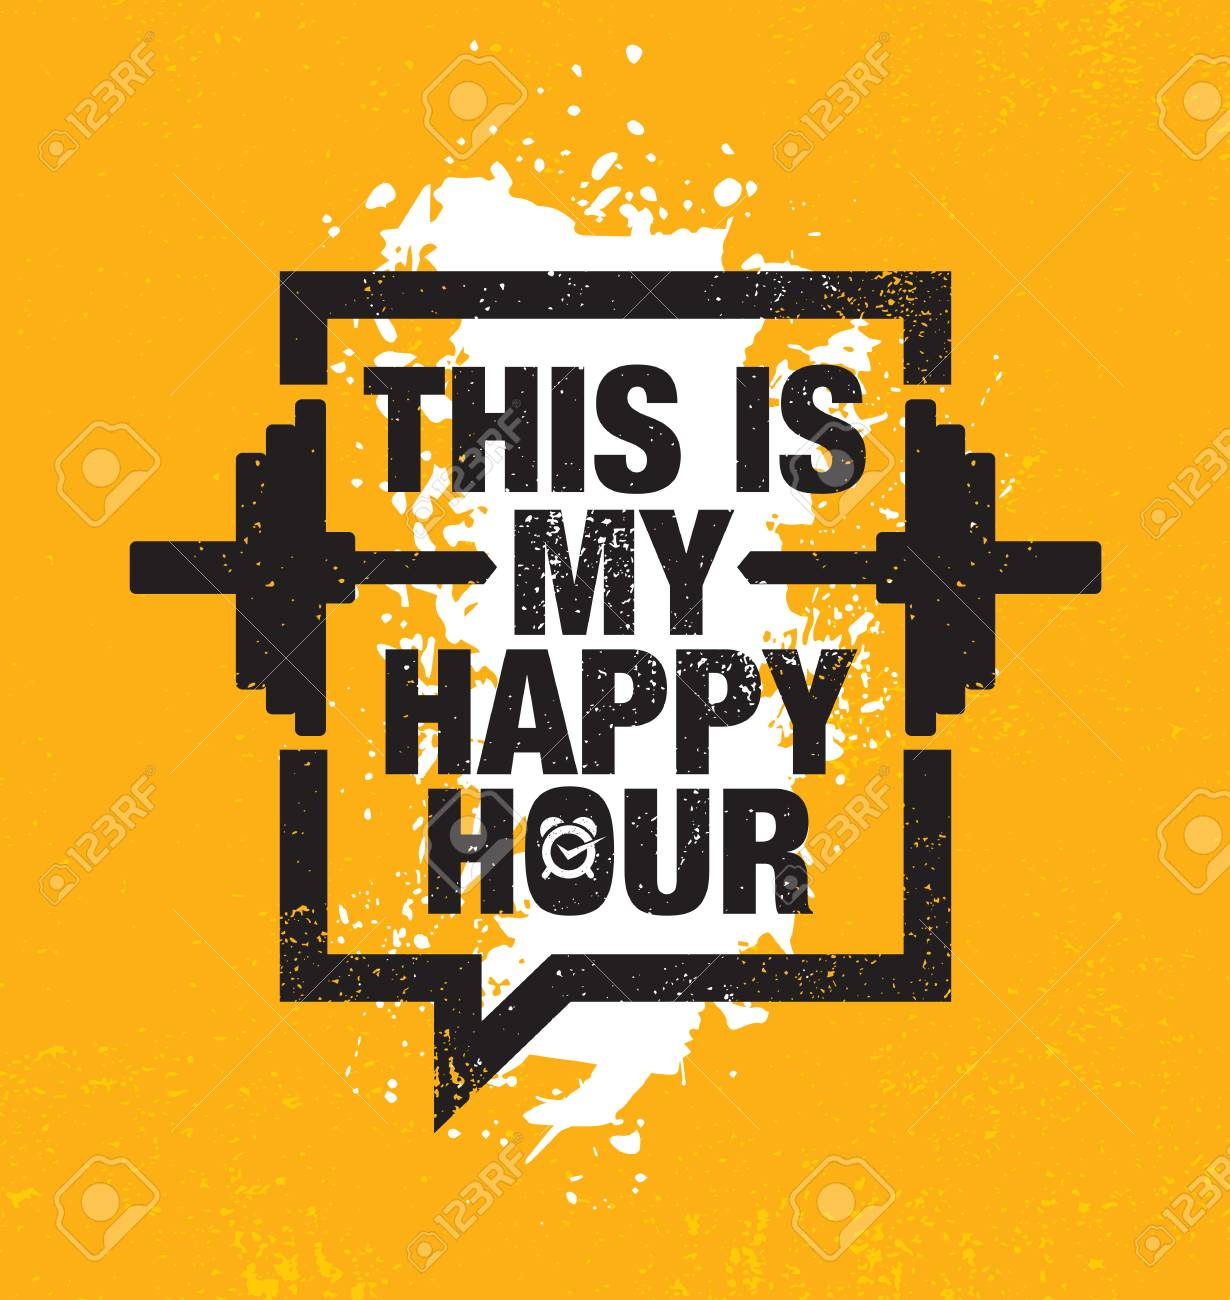 This Is My Happy Hour Fitness Gym Muscle Workout Motivation Stock Photo Picture And Royalty Free Image Image 110860030